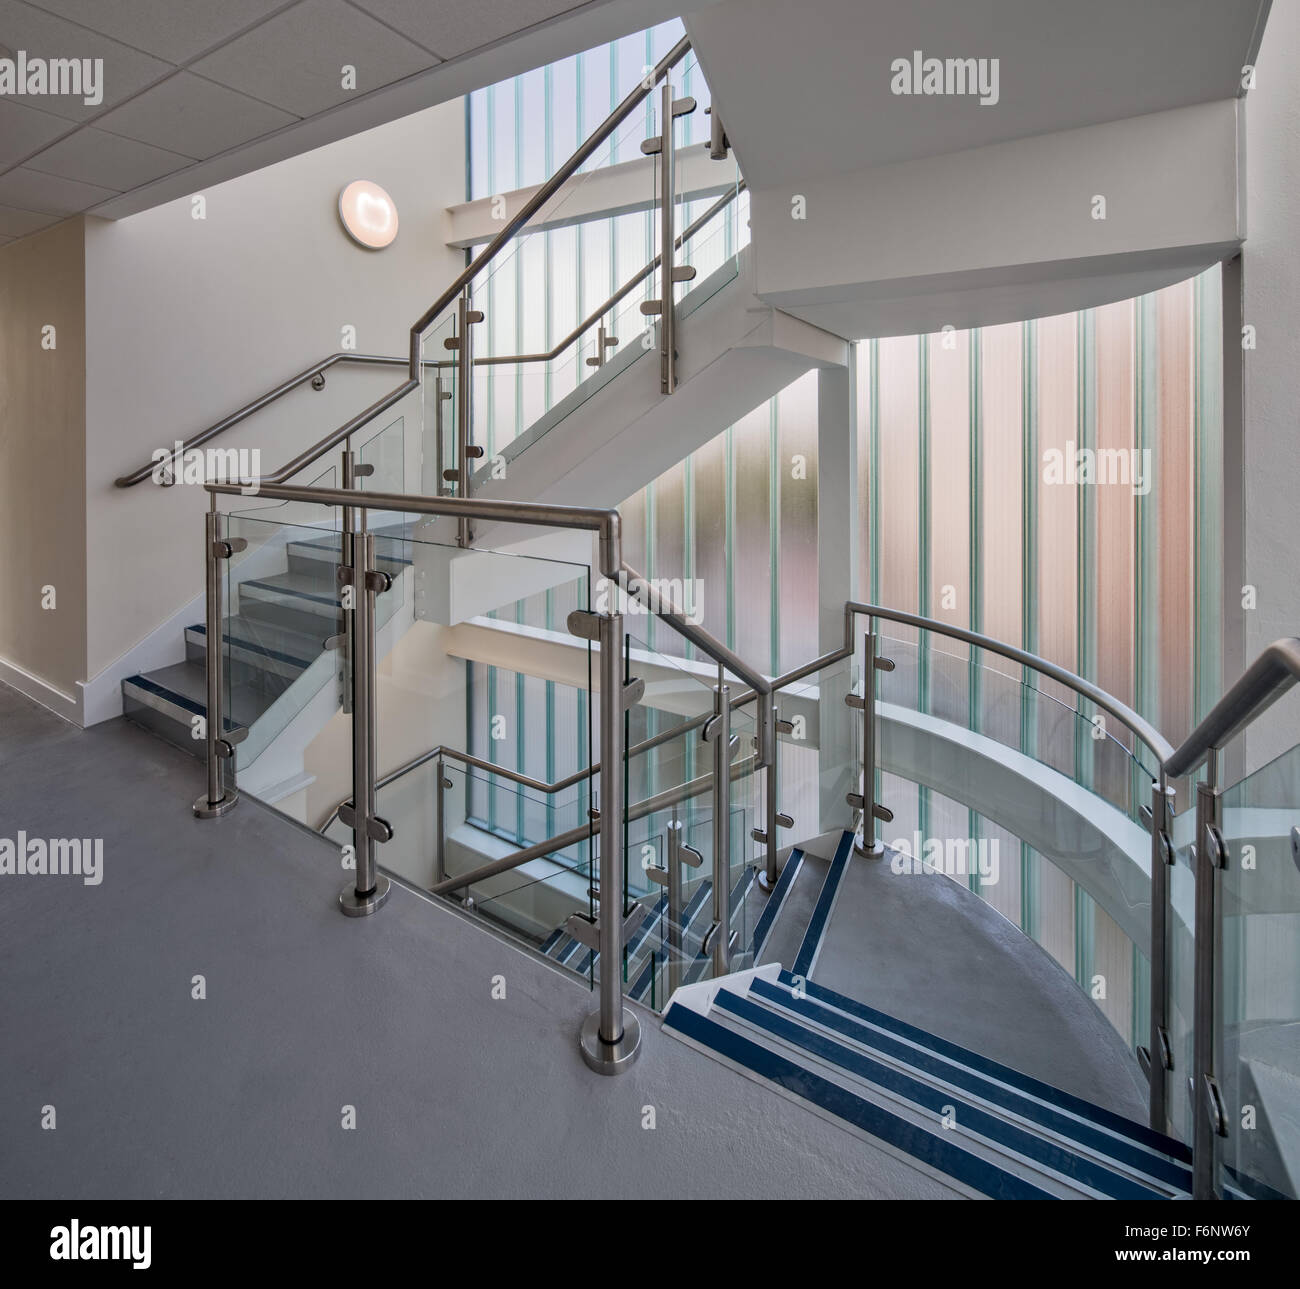 Modern staircase with glass walls - Stock Image